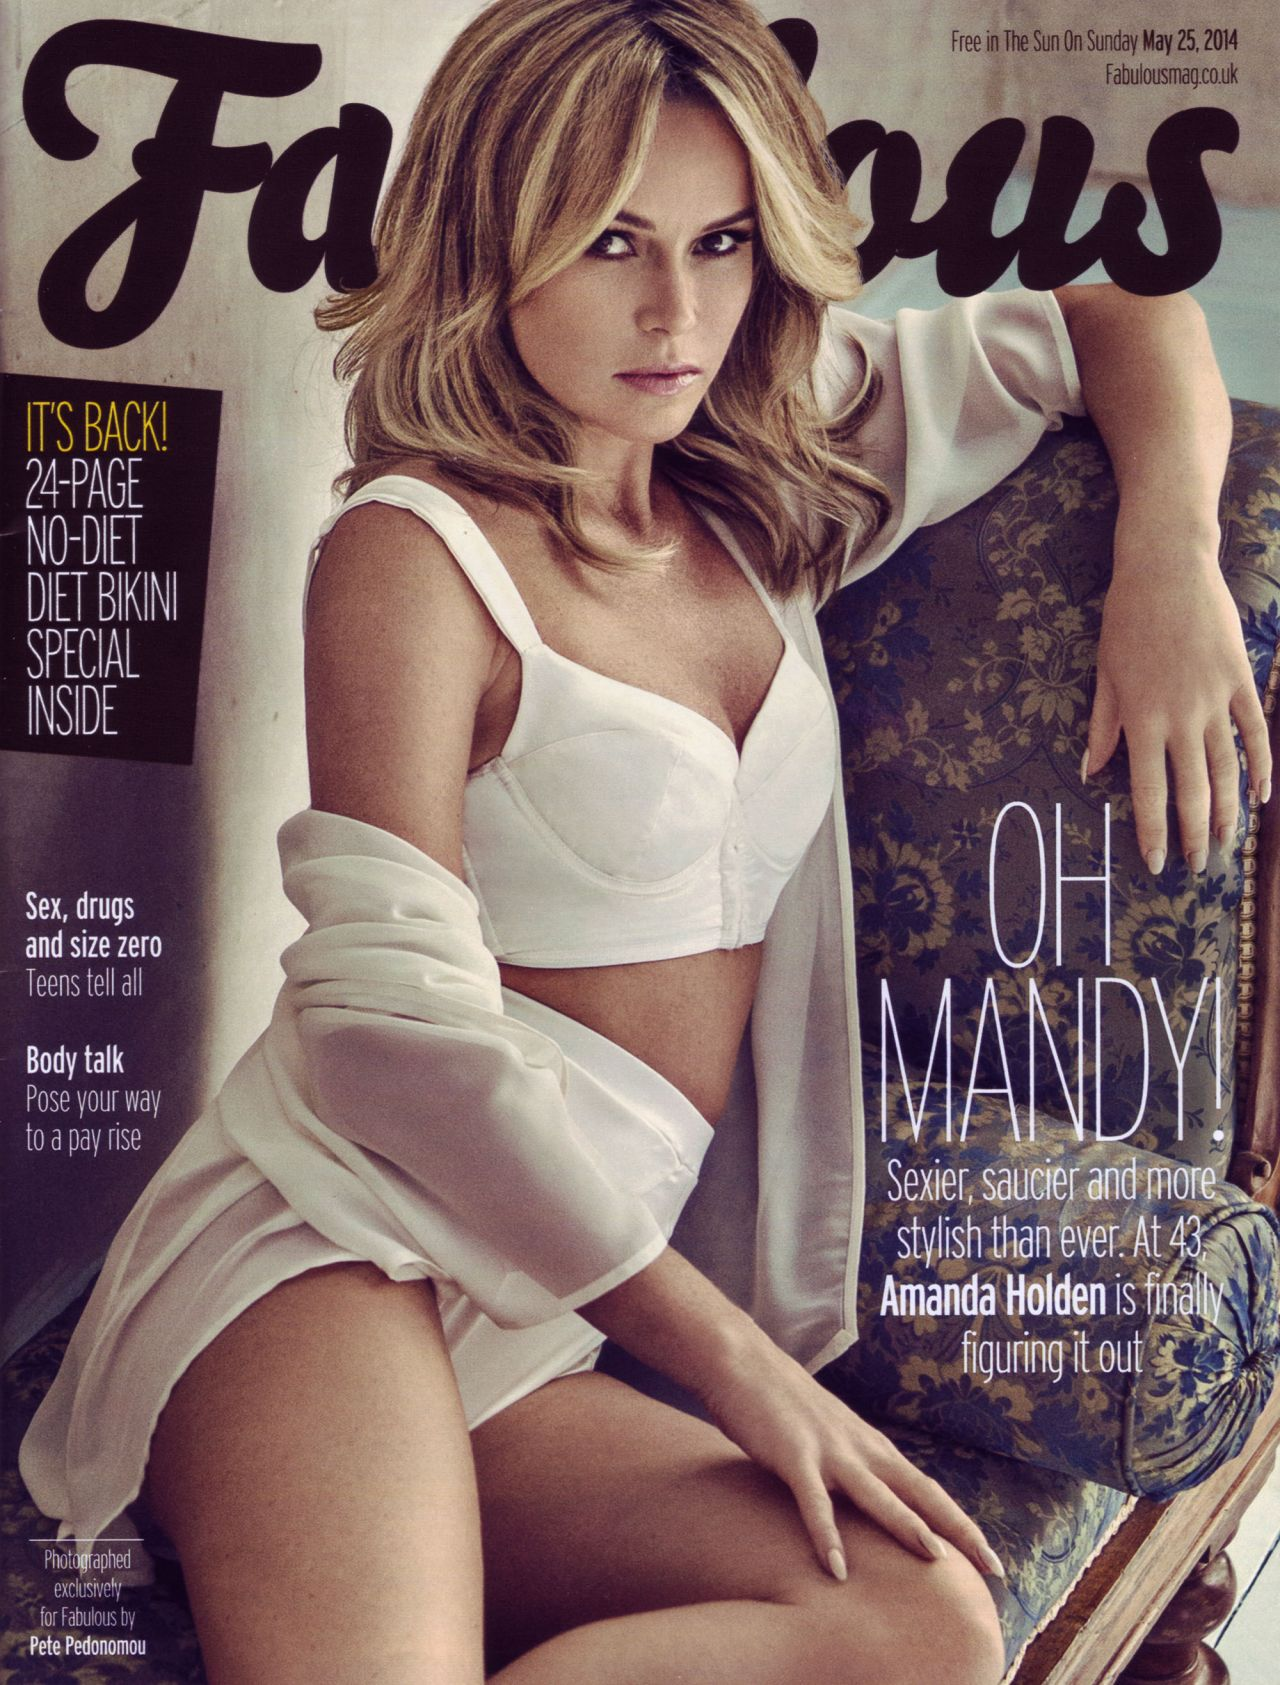 Amanda Holden - Fabulous Magazine May 25, 2014 Issue